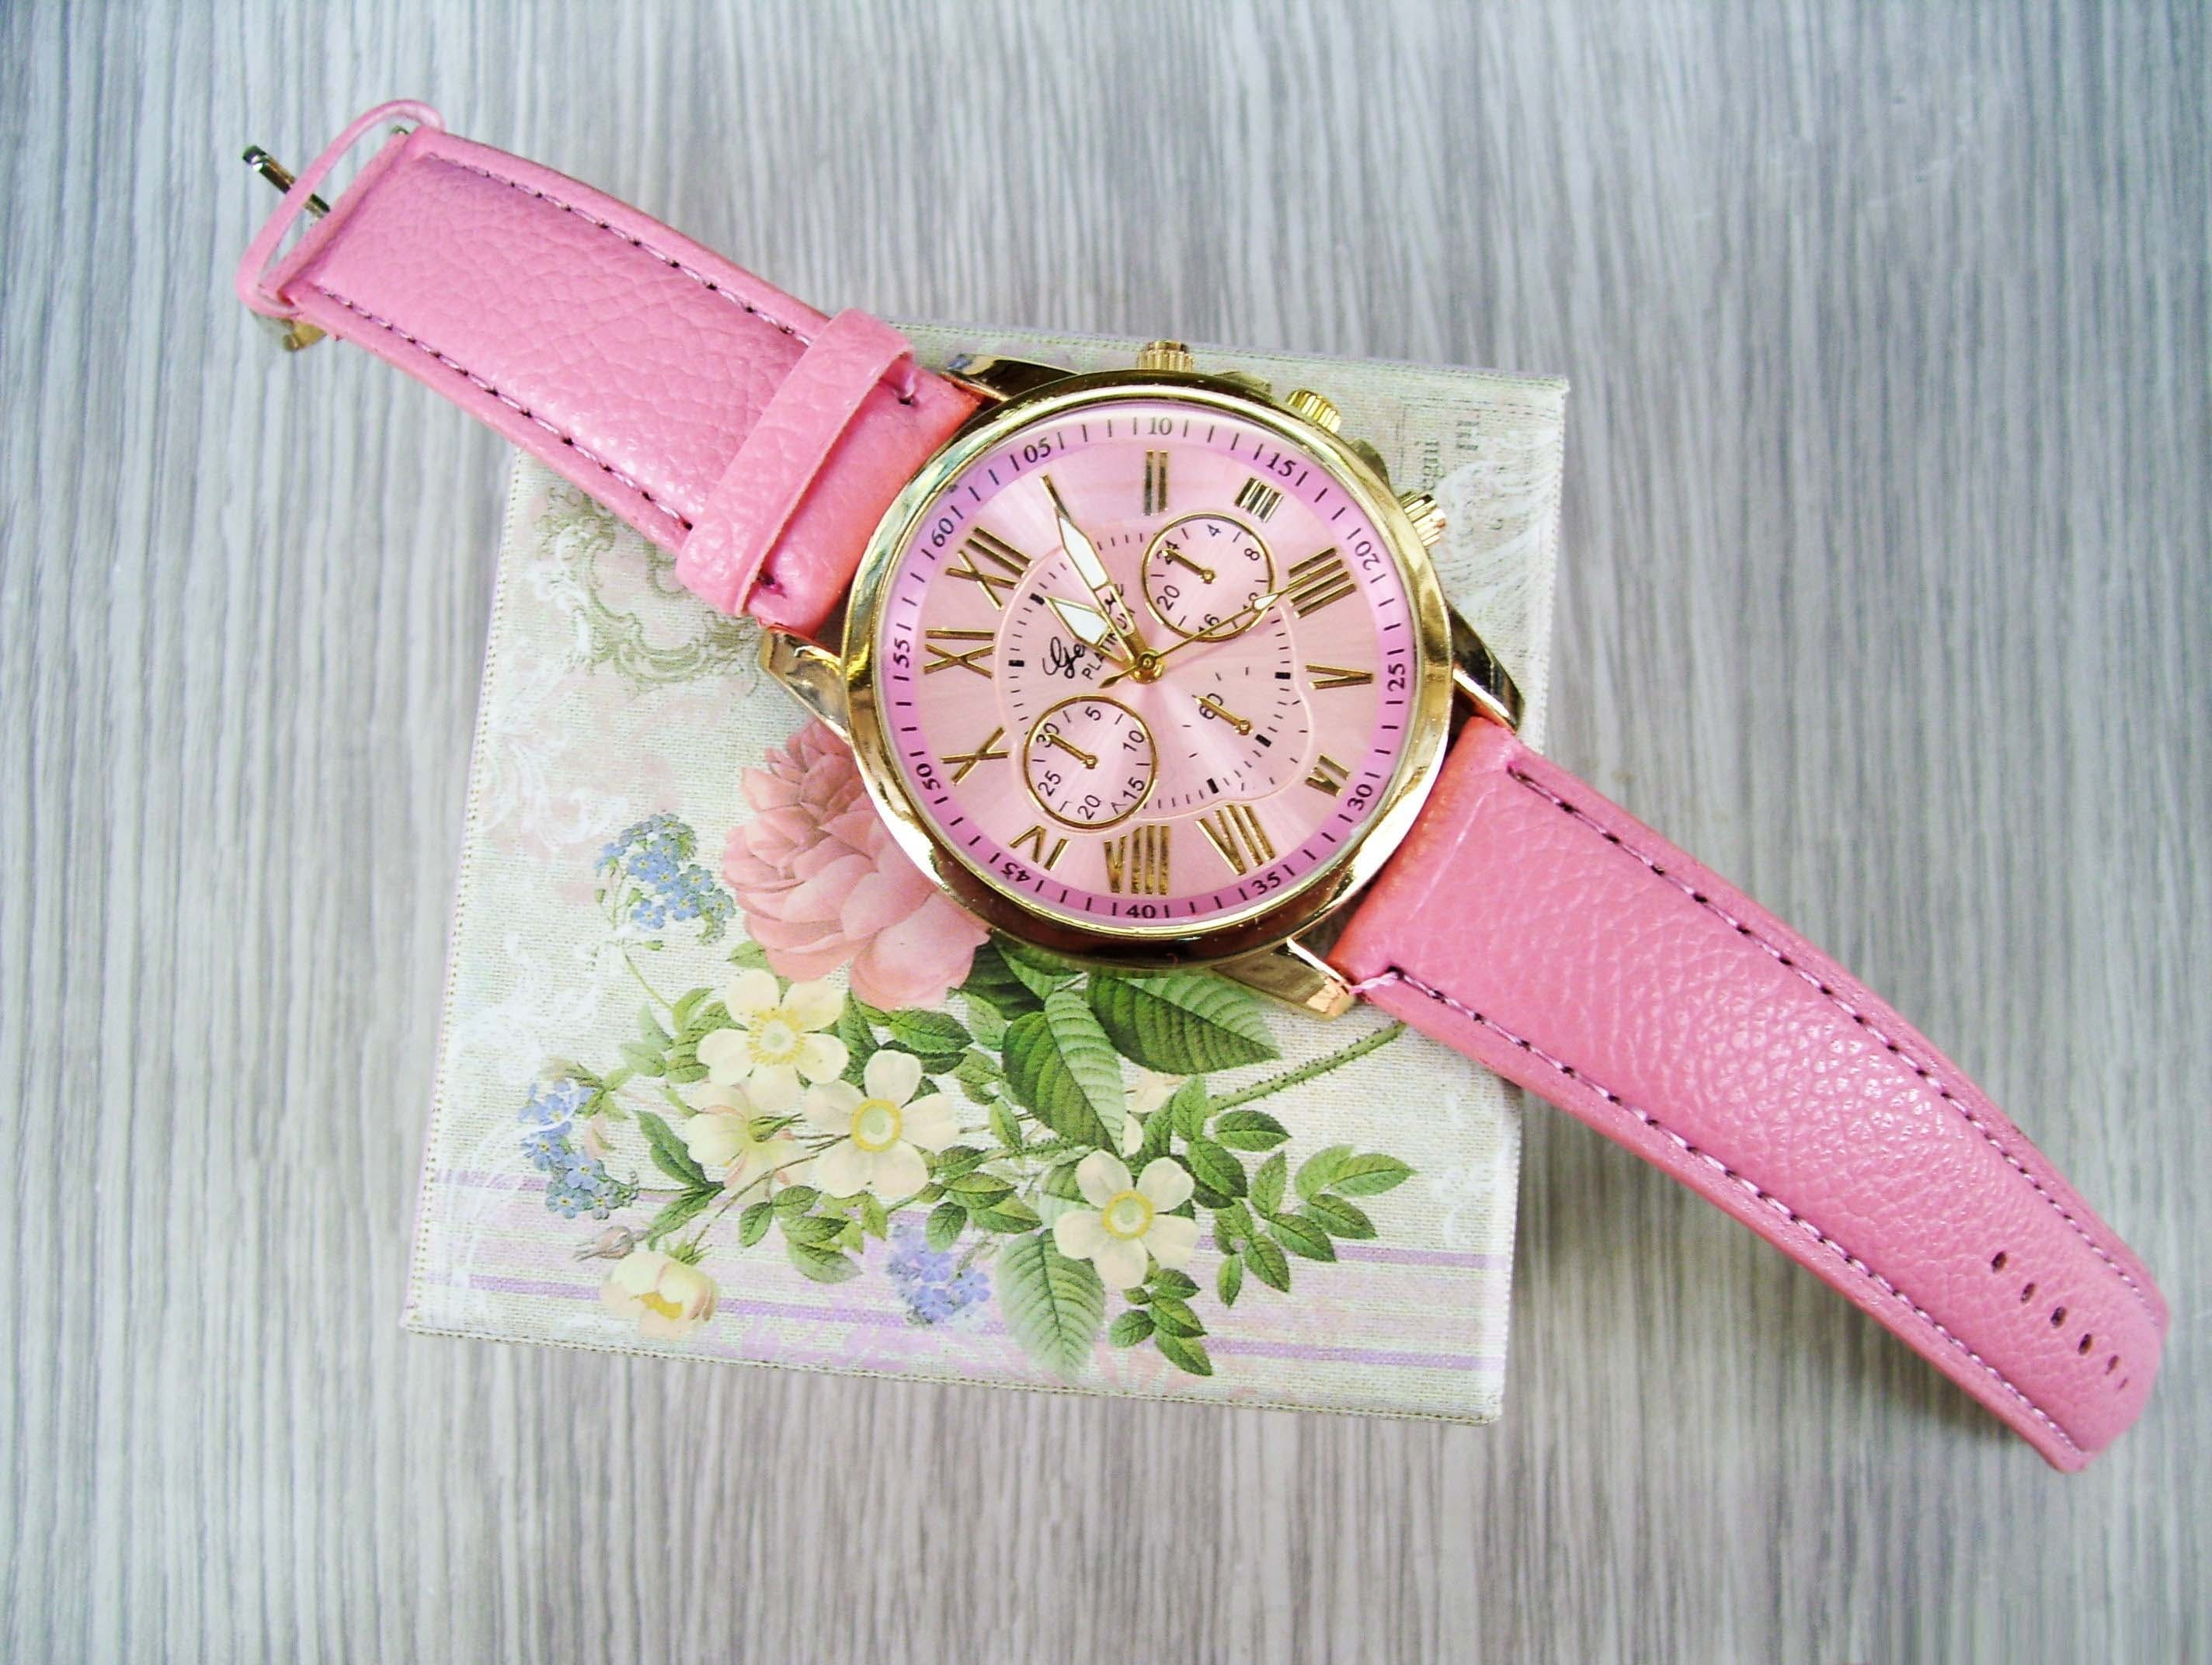 Round Gold-colored Chronograph Watch With Pink Leather Strap on Box